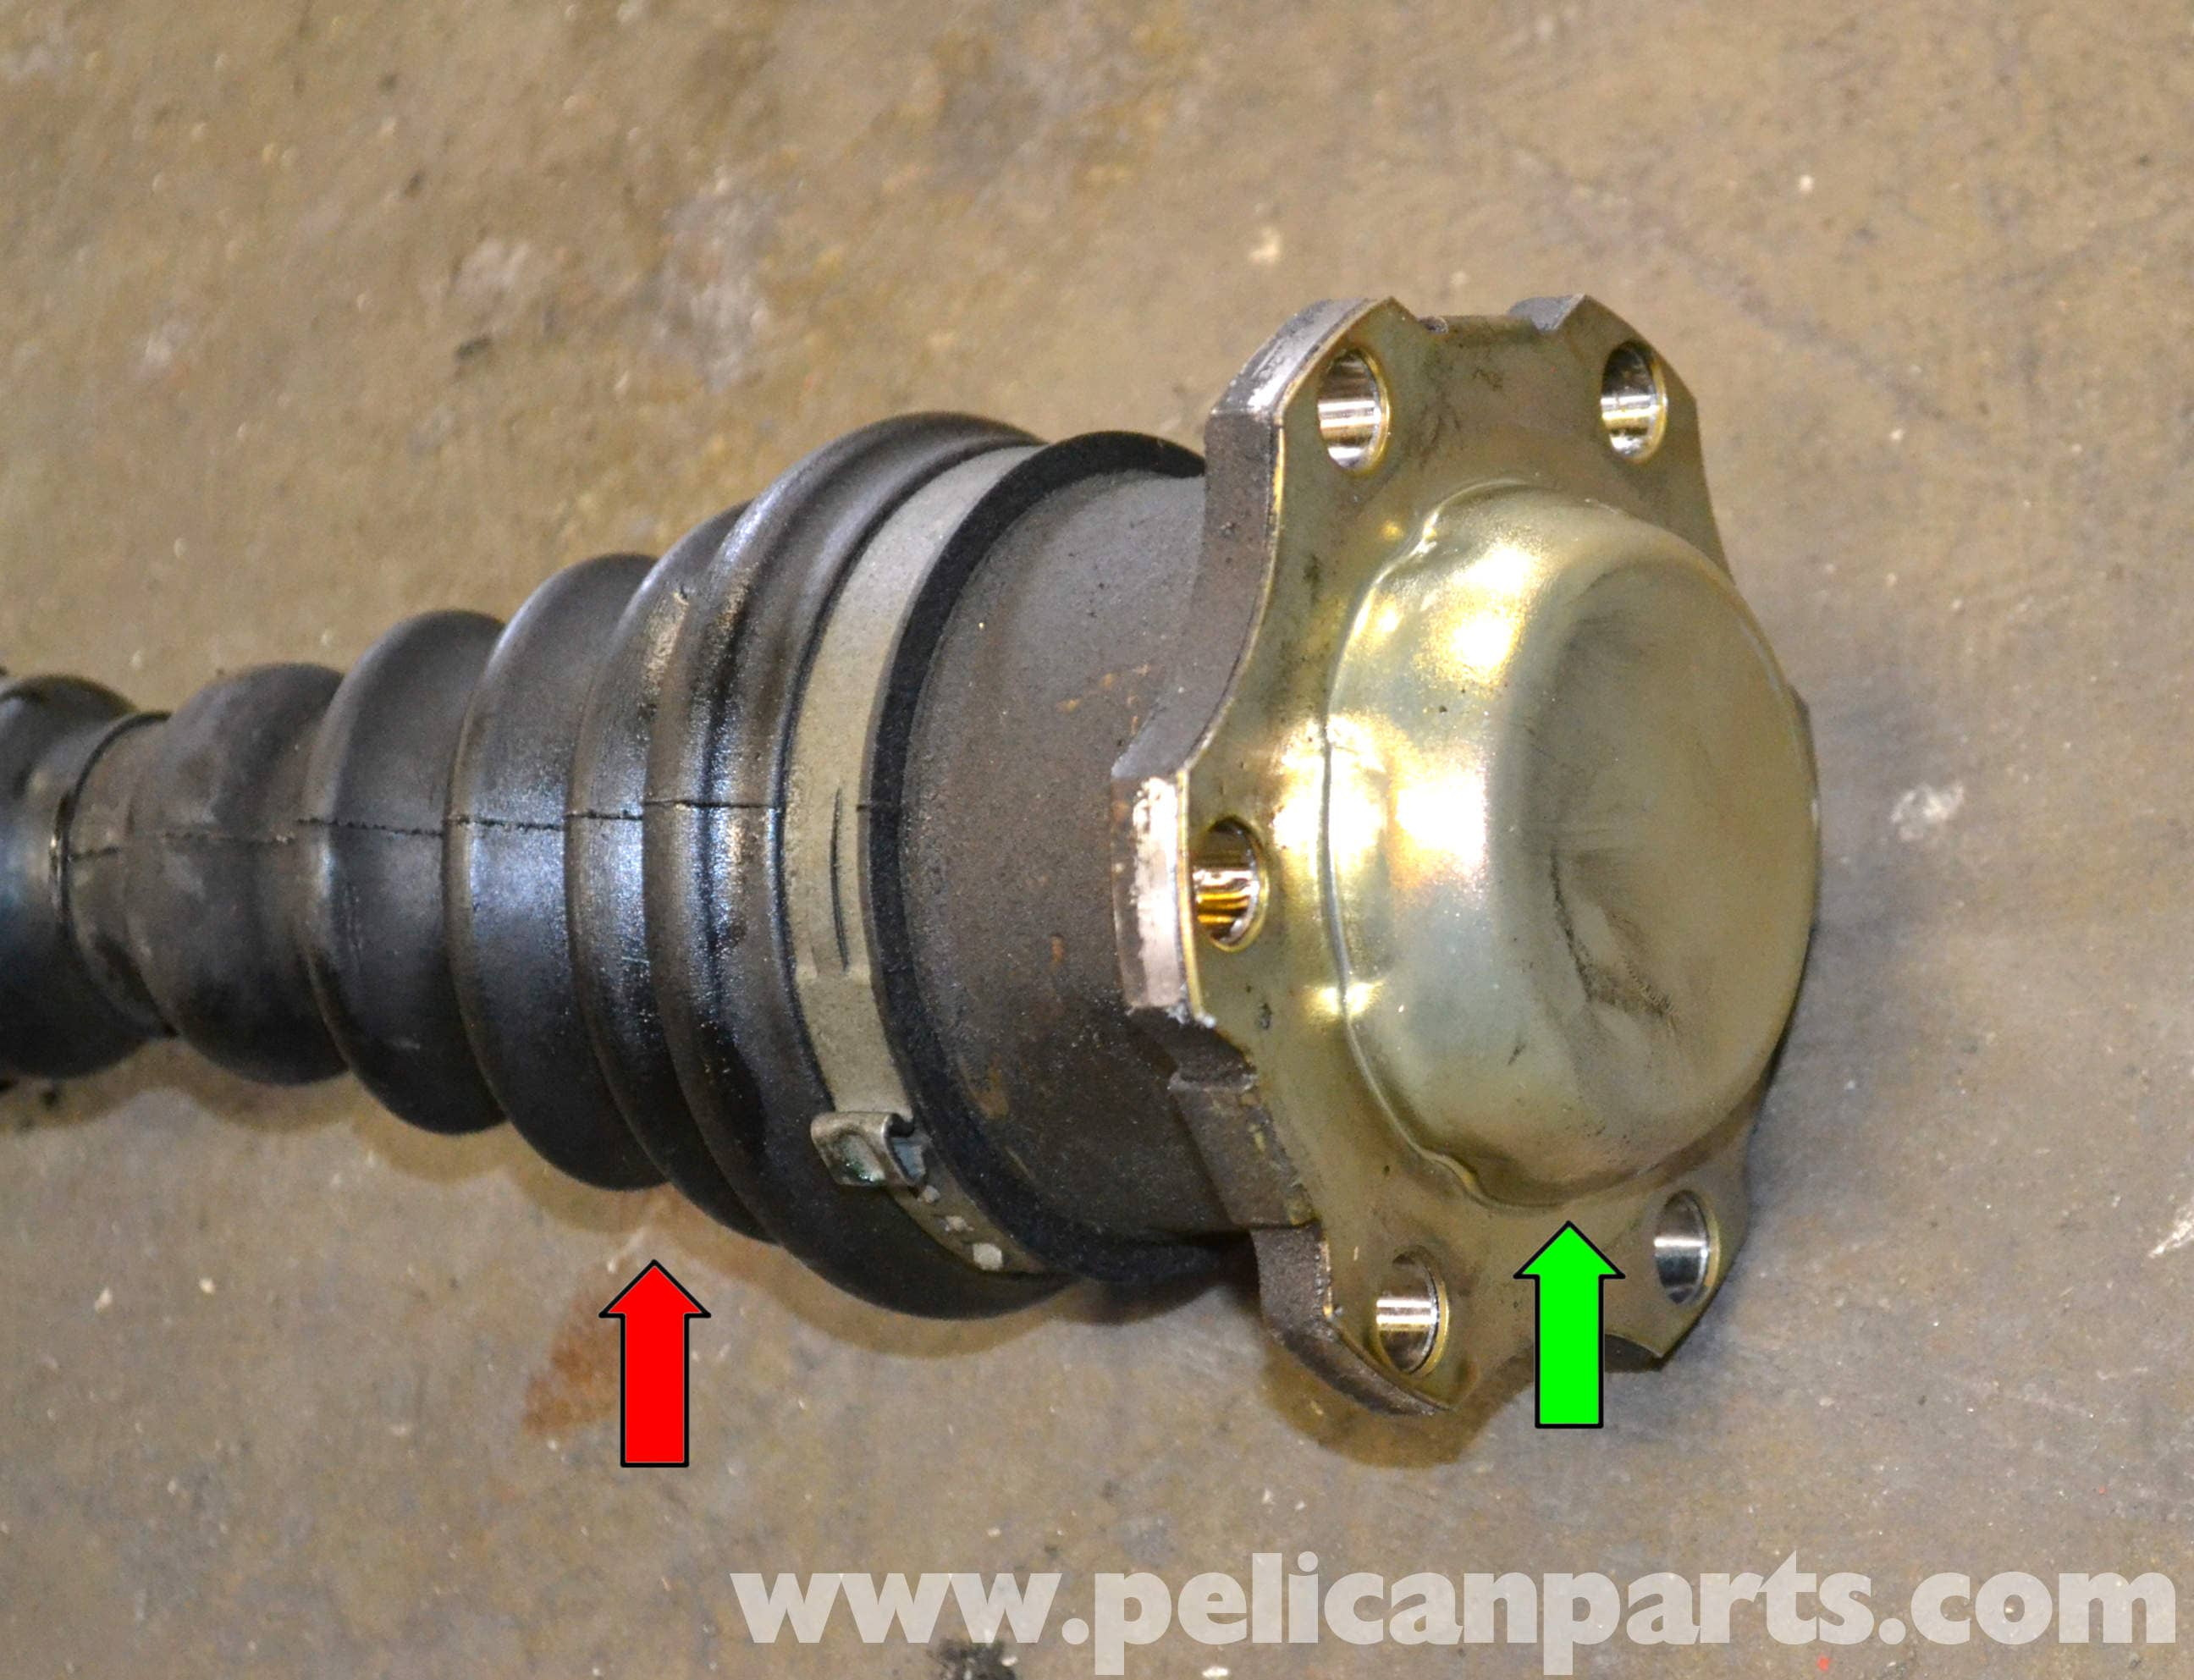 Volkswagen Golf GTI Mk V Front Drive Axle Replacement (2006